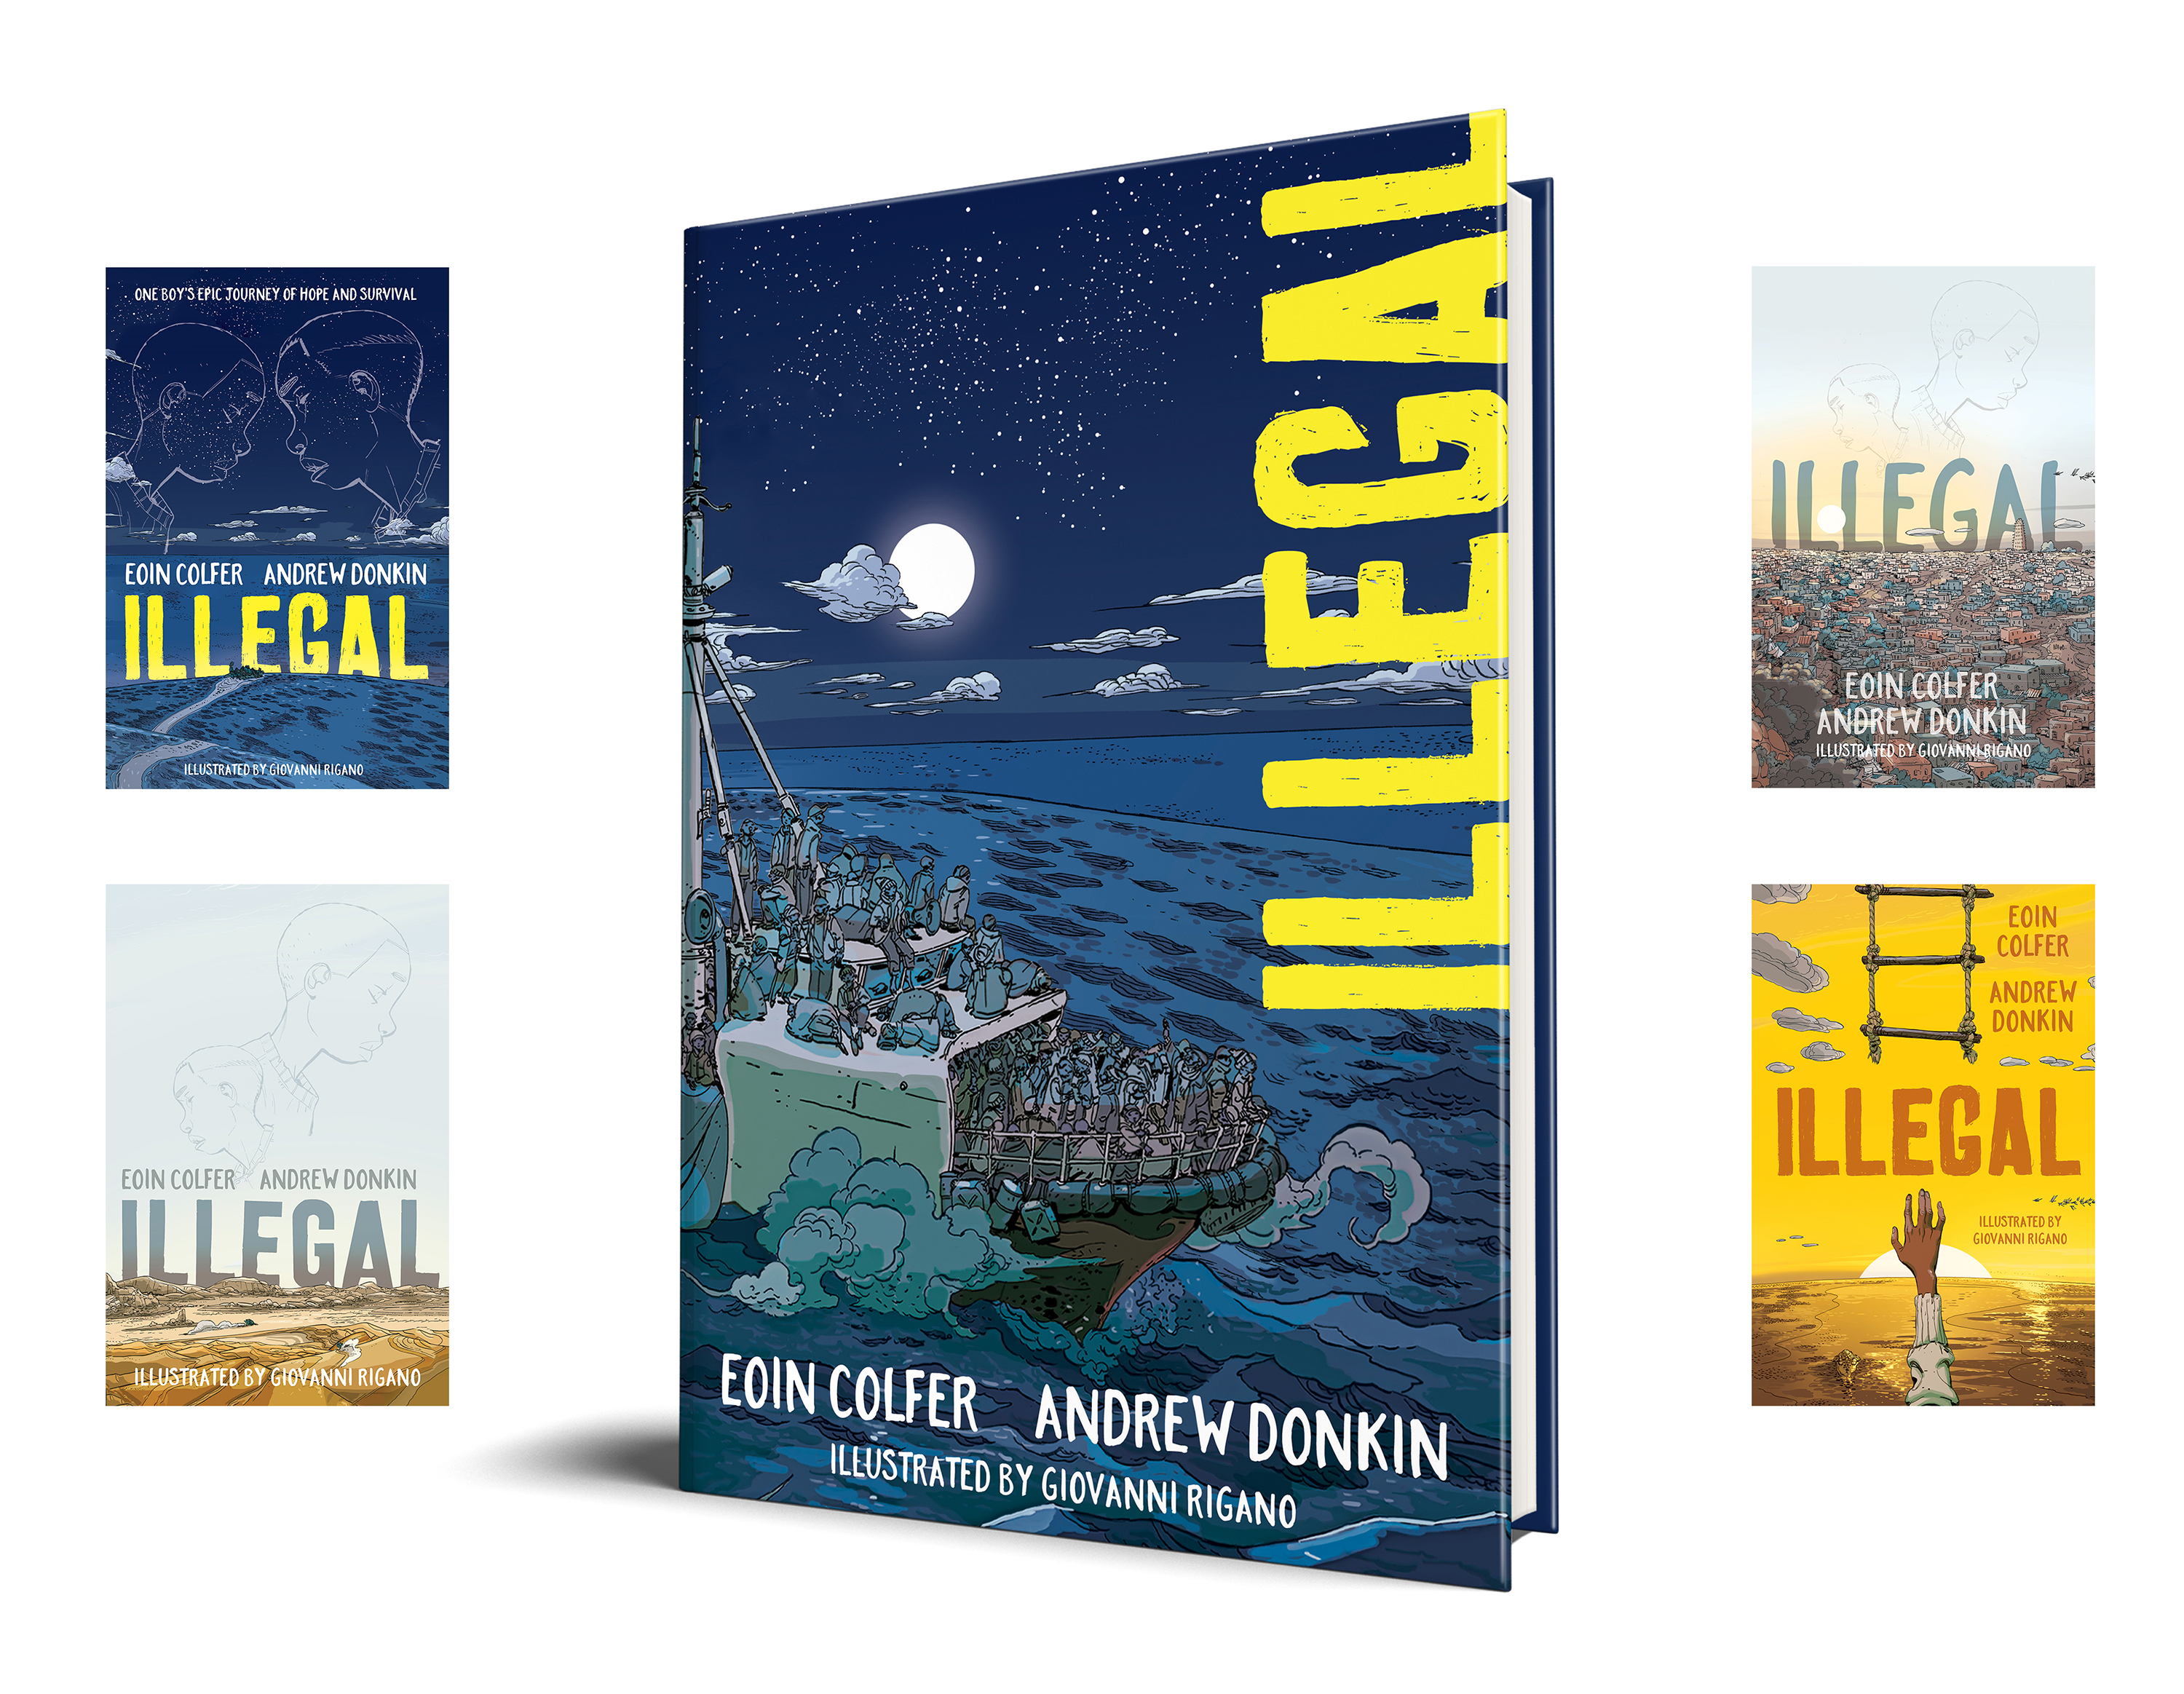 Illegal, Eoin Colfer